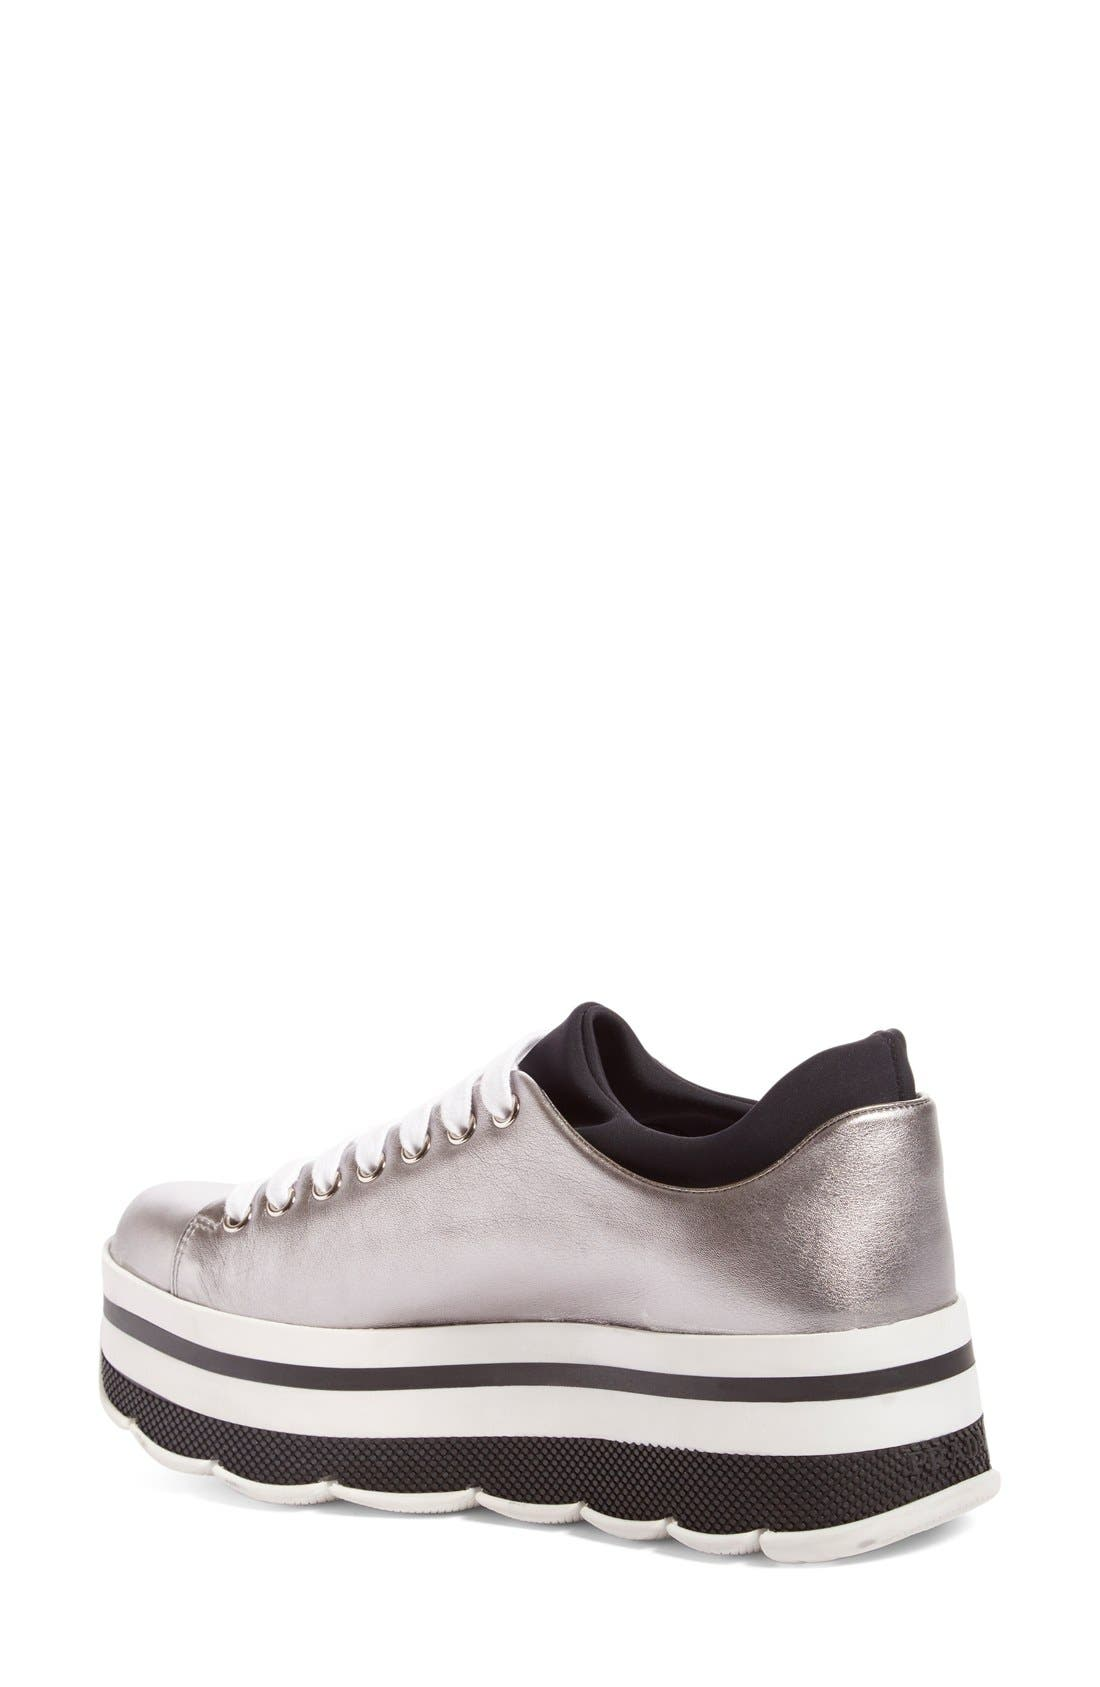 Platform Sneaker,                             Alternate thumbnail 2, color,                             Silver Leather